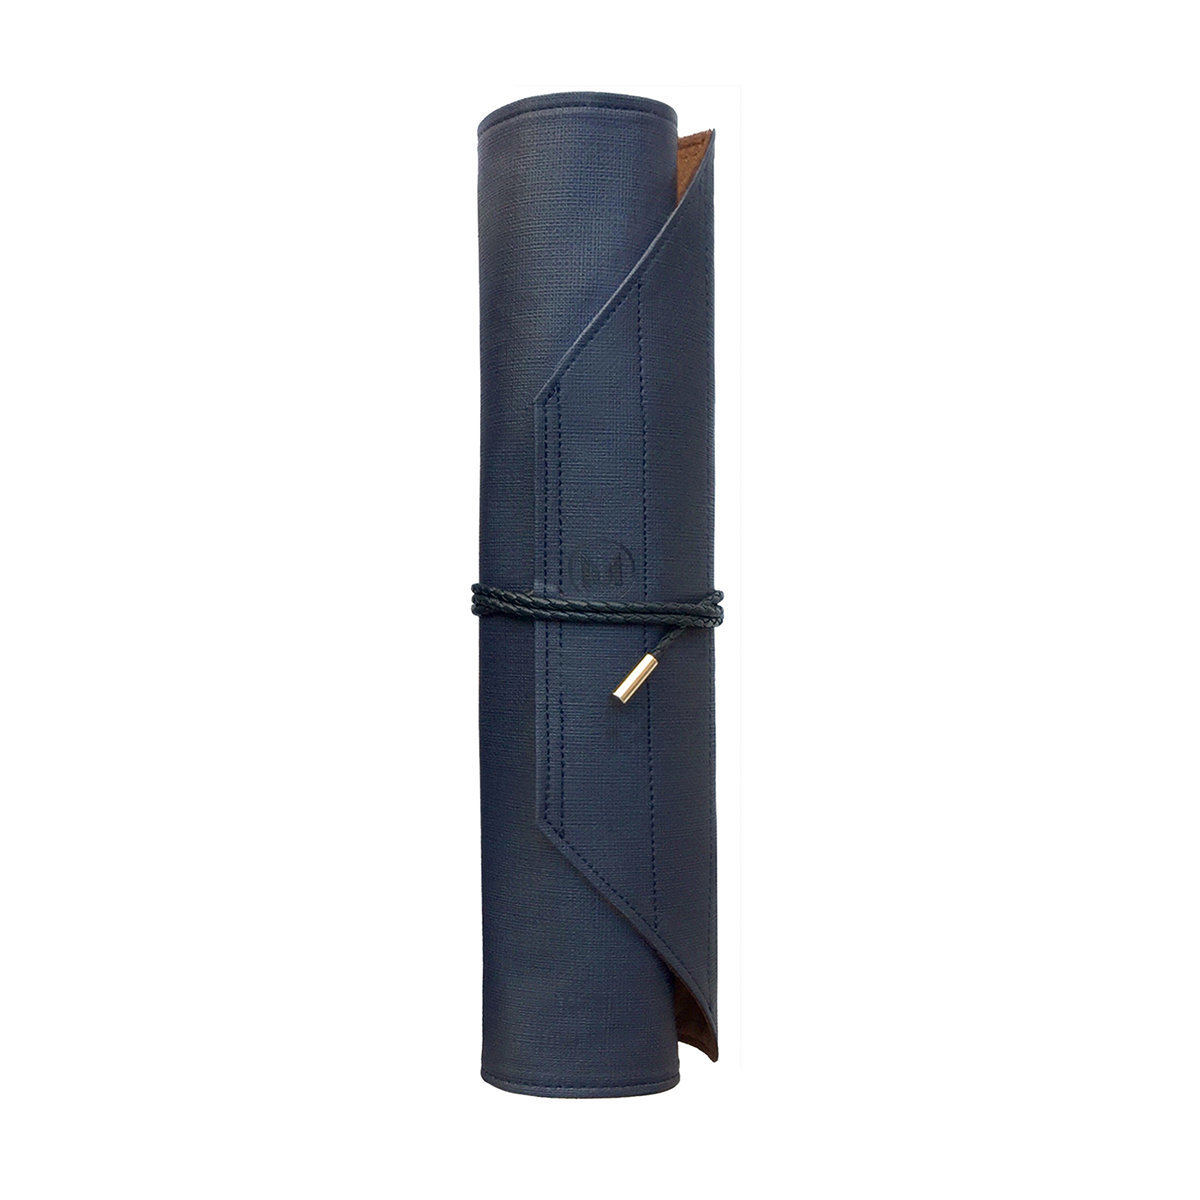 ContRoll9 Artist M, Roll Pouch (Maple Navy)